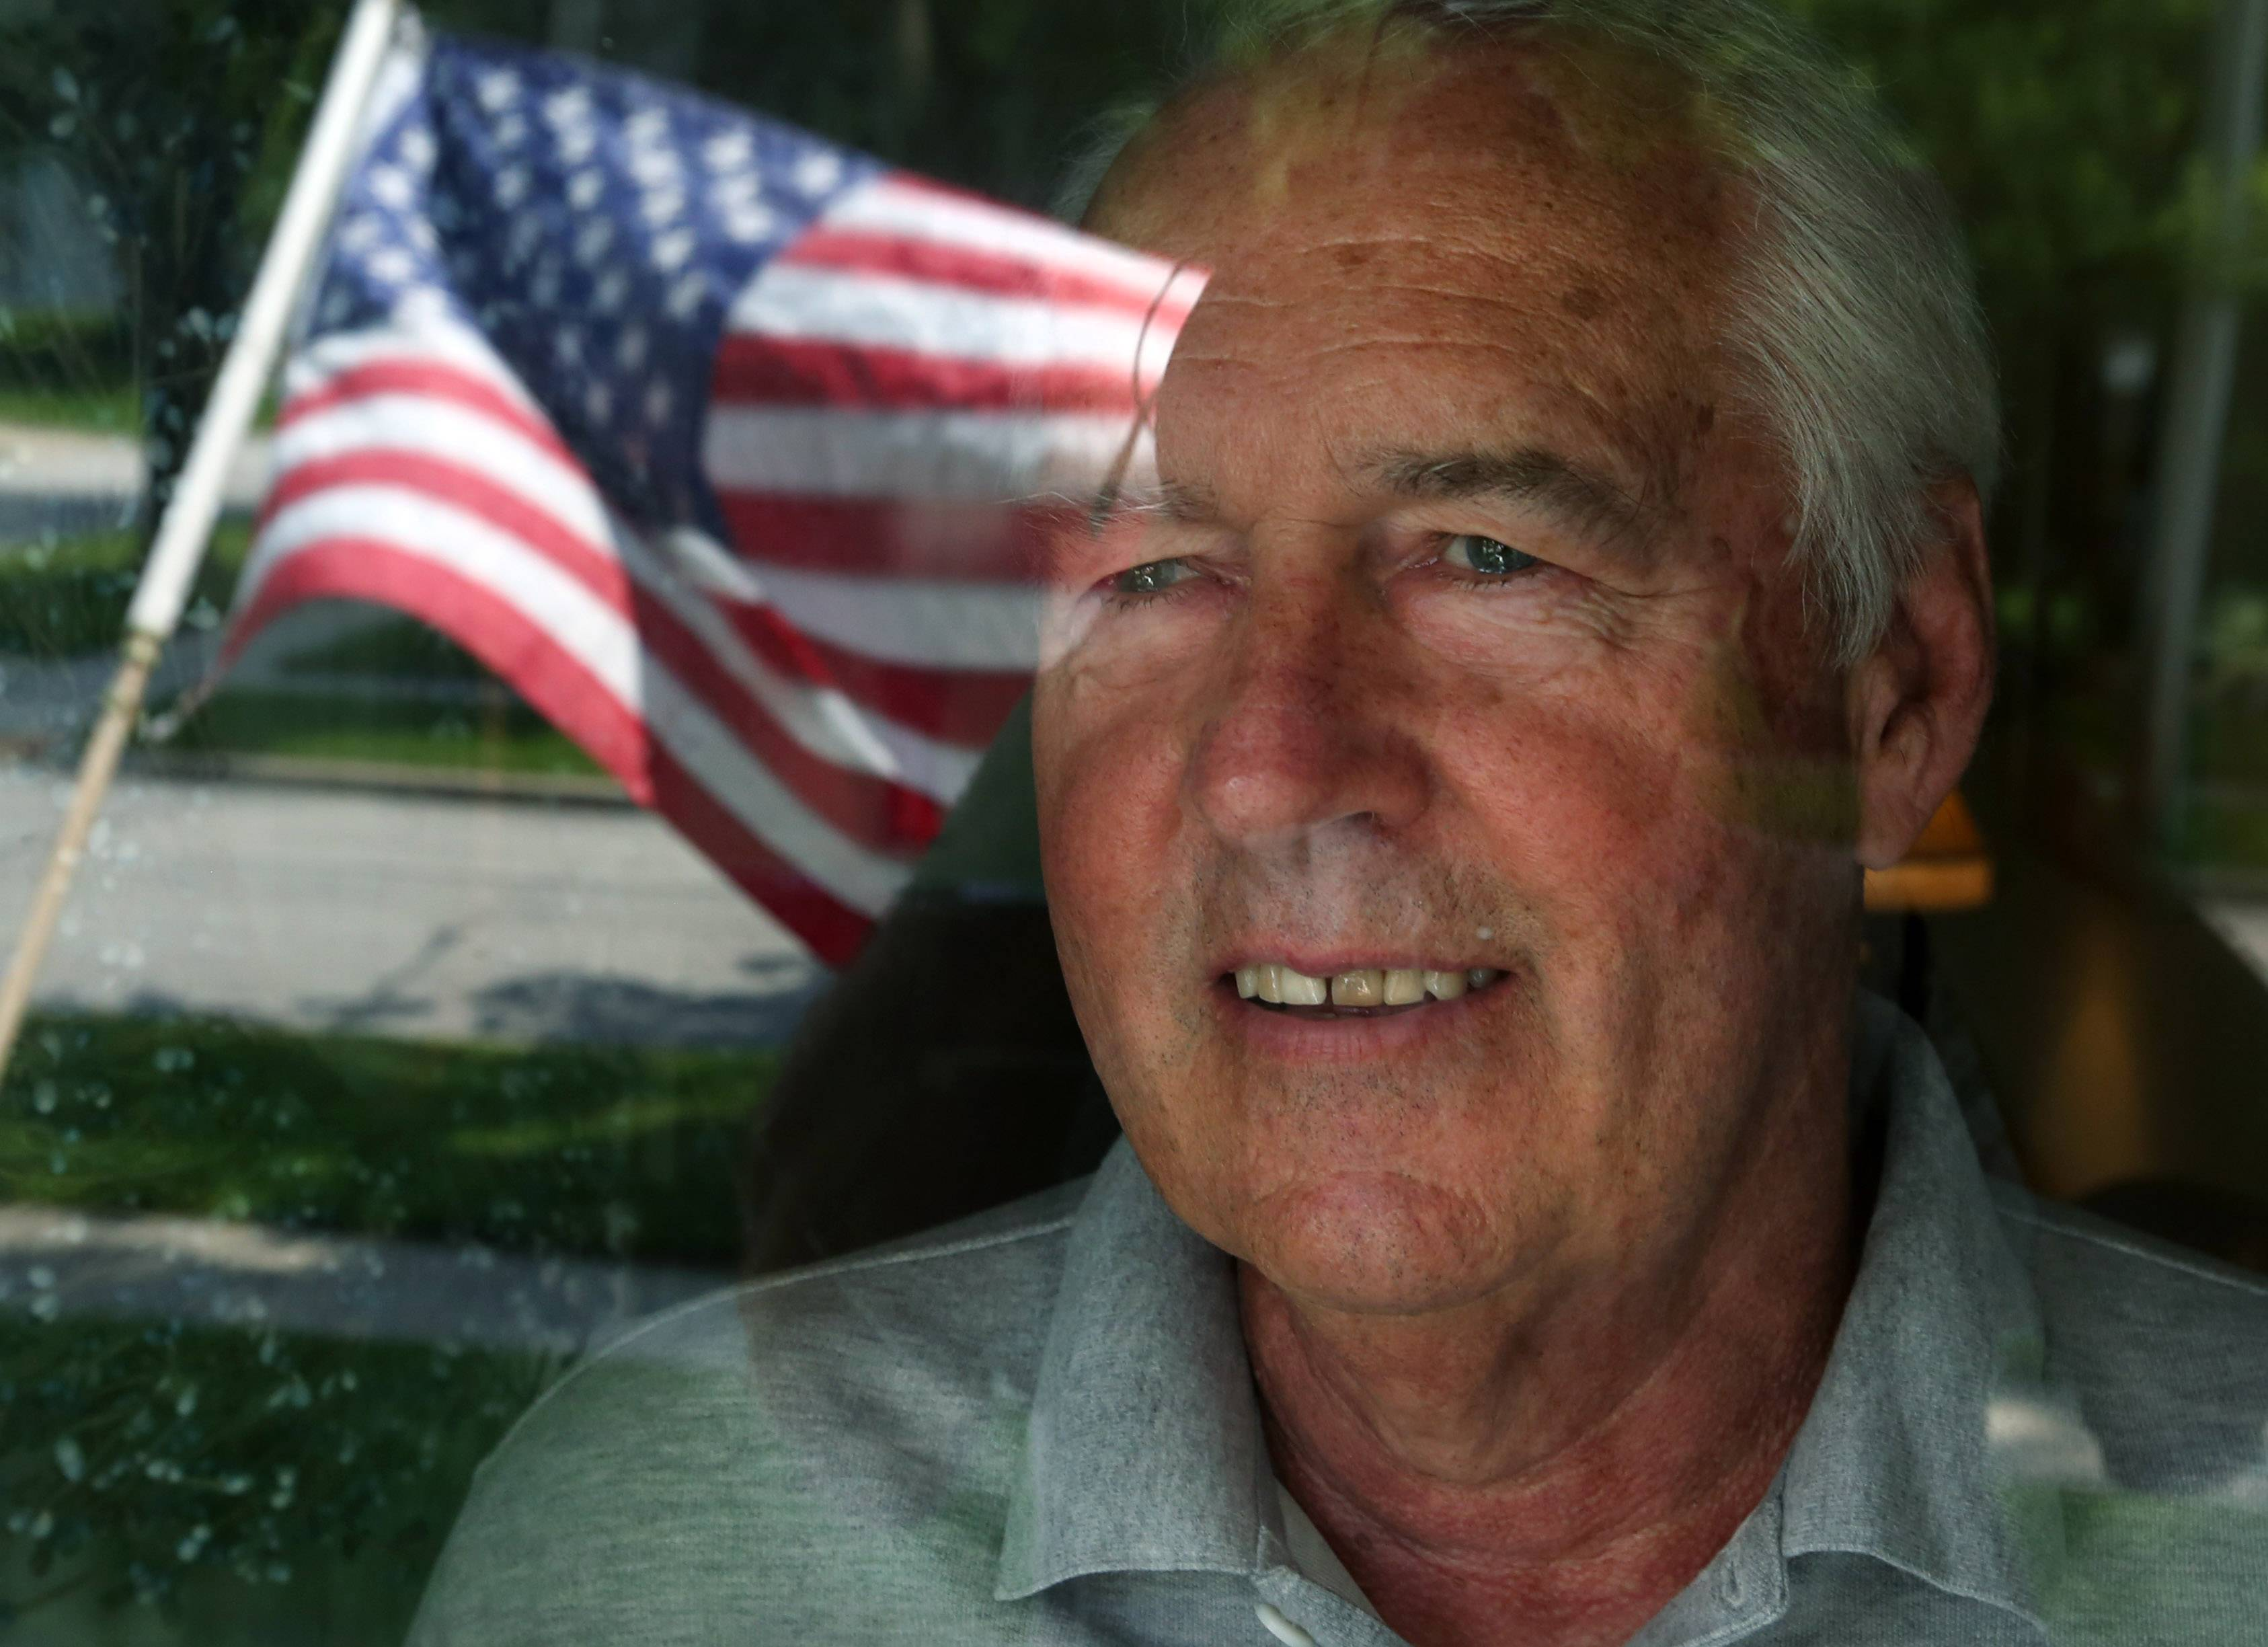 John Malcom looks through his Arlington Heights front door as the reflection of his American flag on the front of his home completes the picture on Thursday. Malcom served in the Army National Guard from 1967-1972.